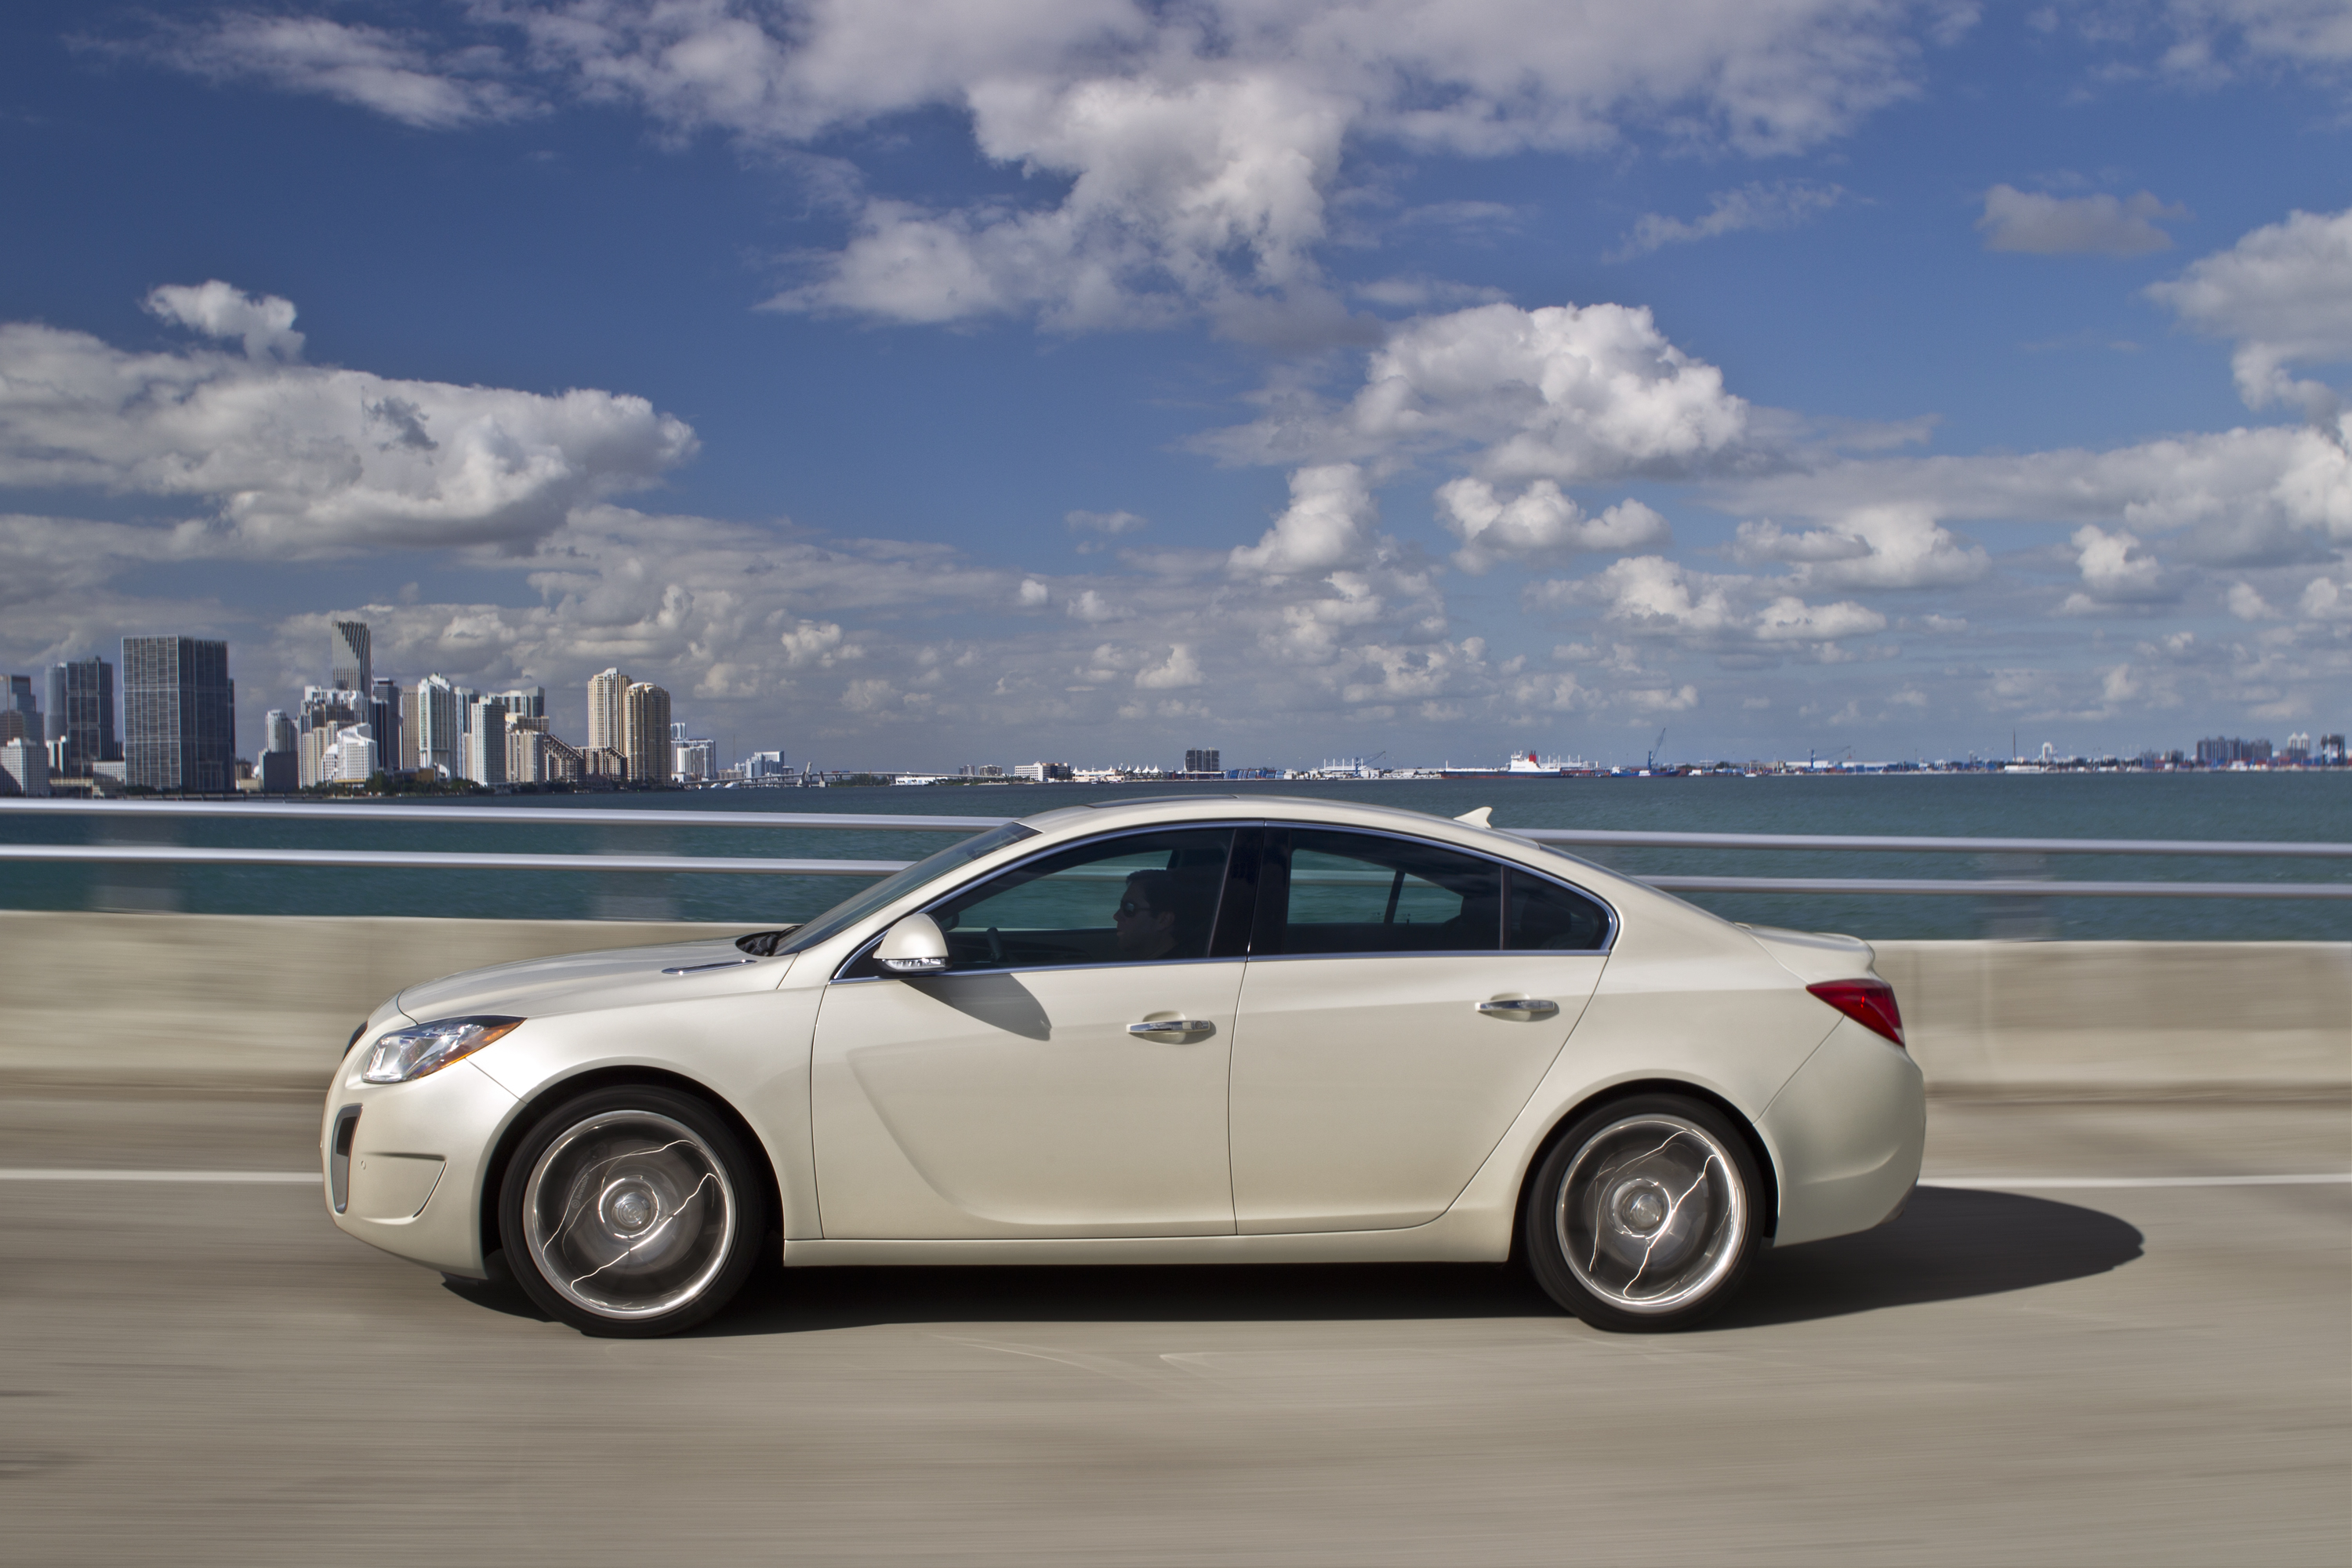 cxl turbo price road the gs regal blog test ignition buick